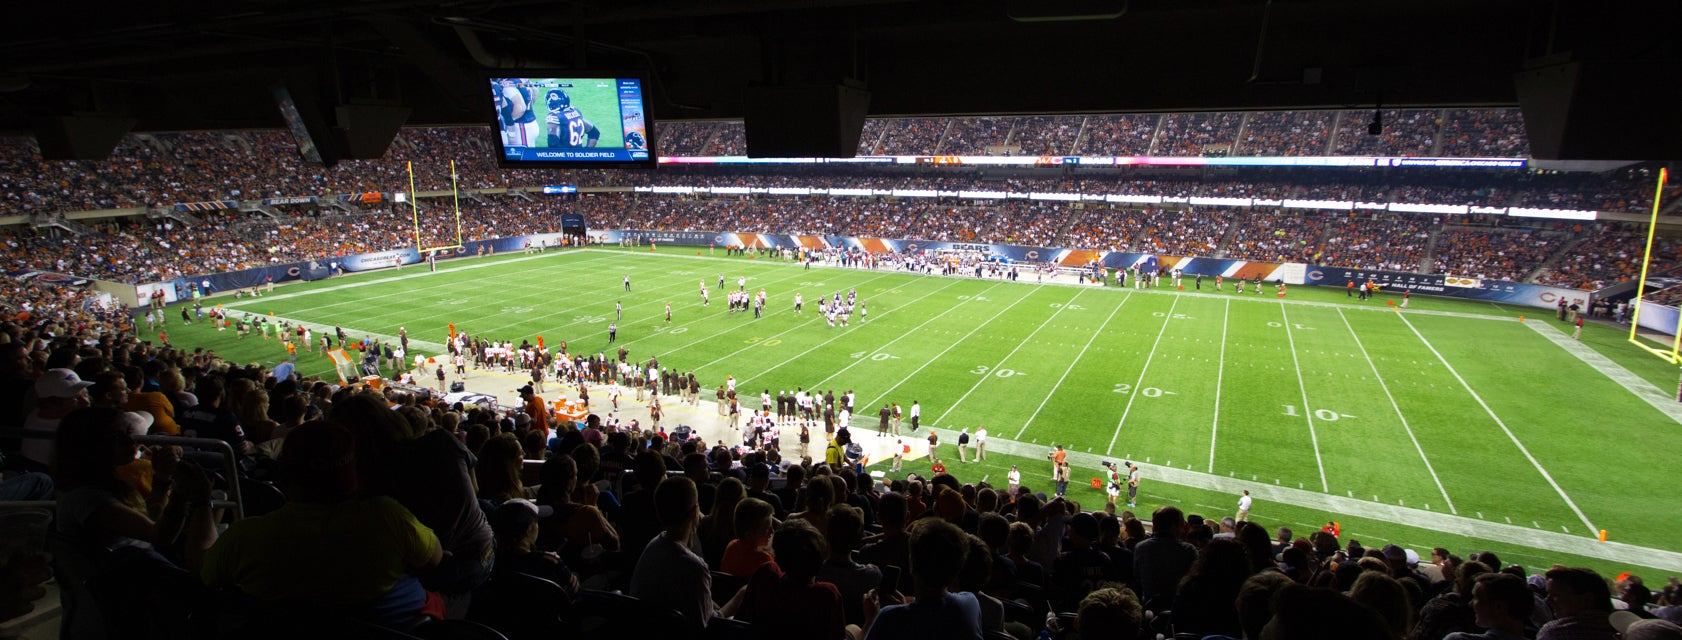 Seat view from United Club